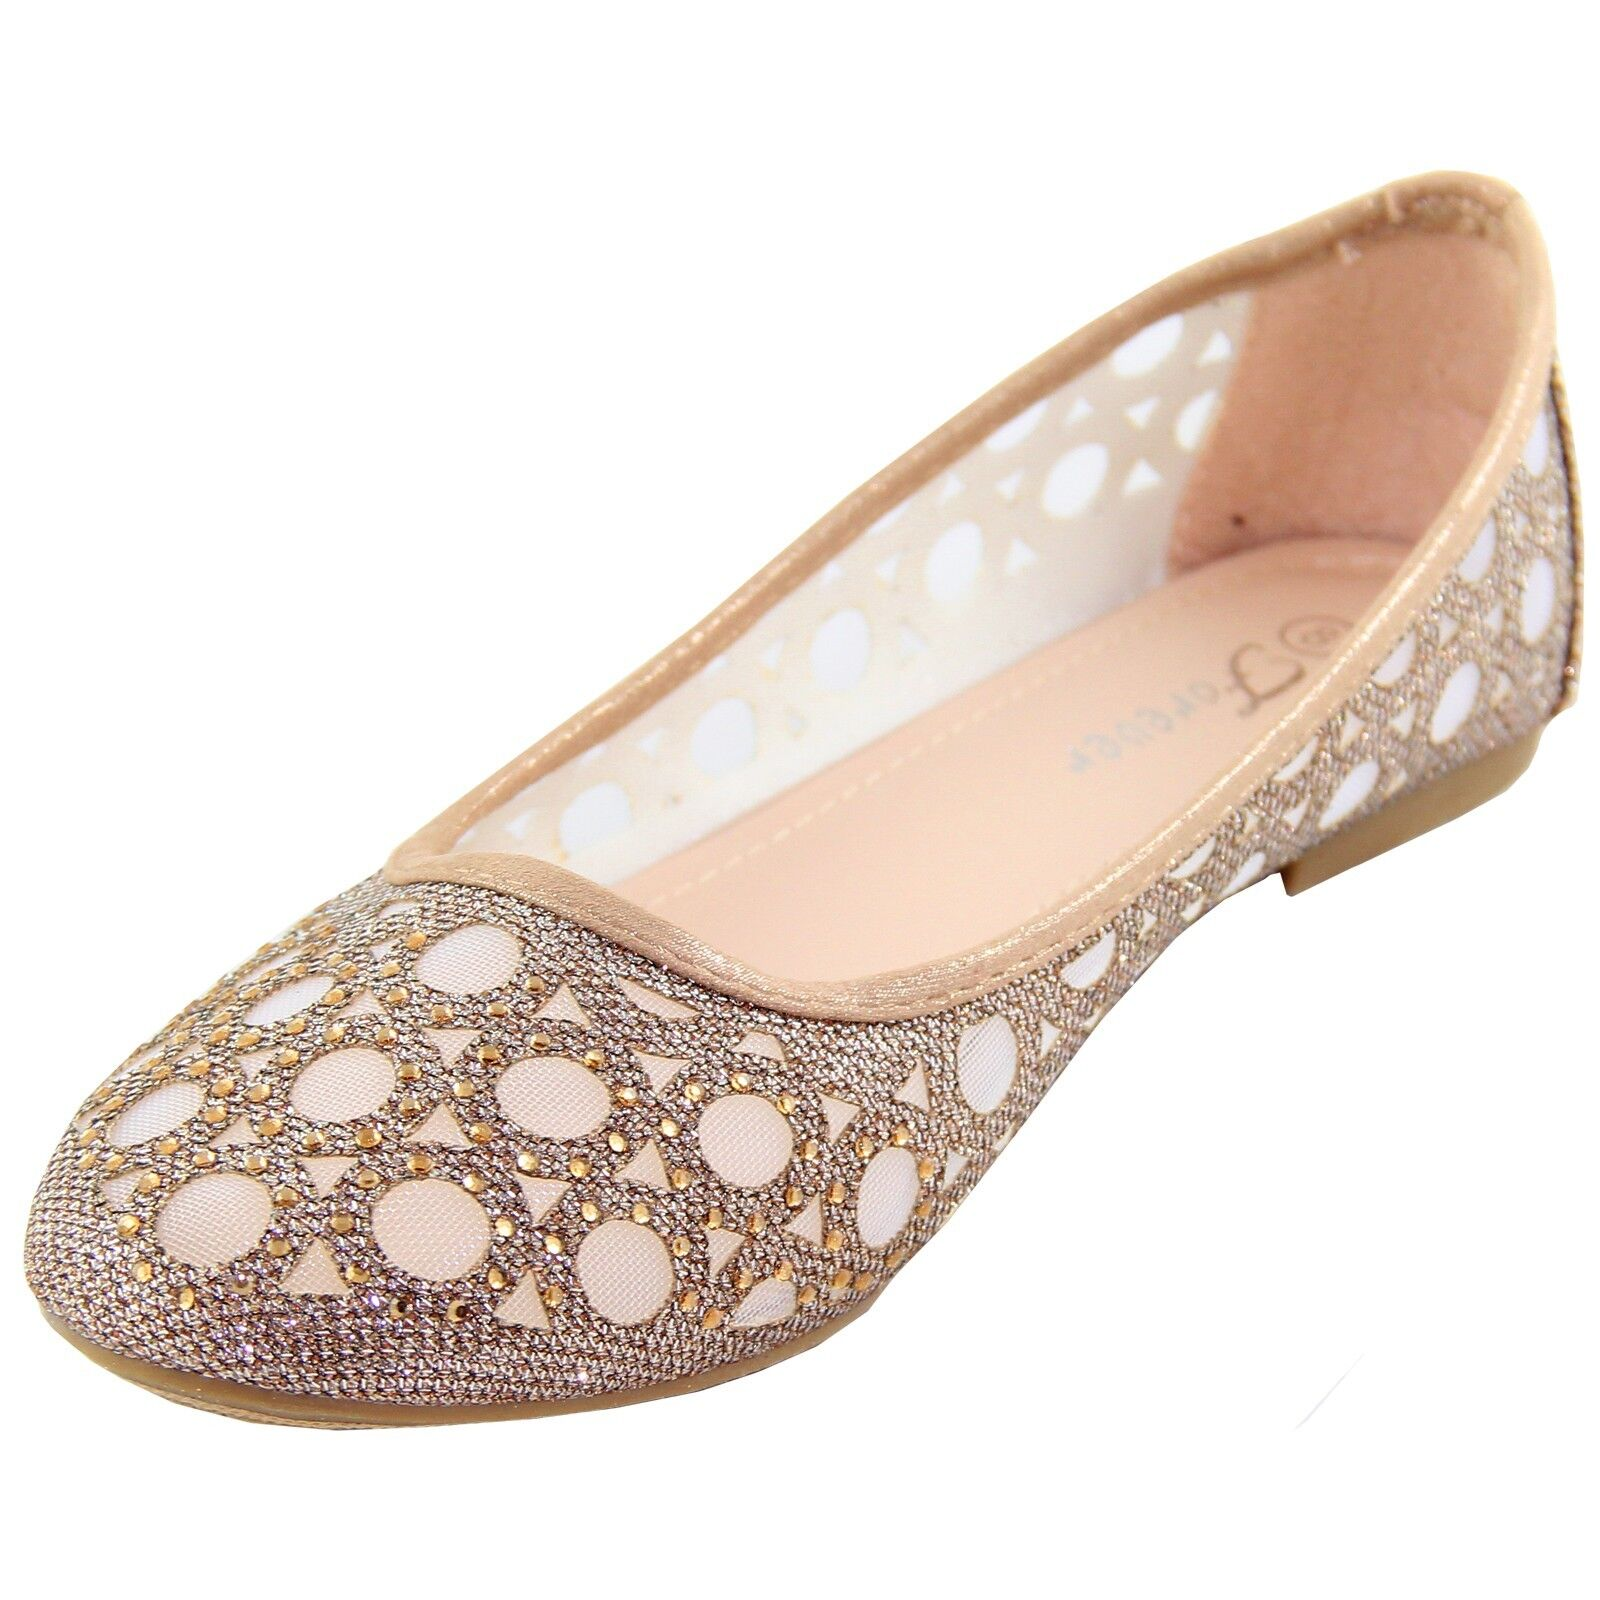 New women's shoes blink ballet flats mesh finish casual summer beige champagne